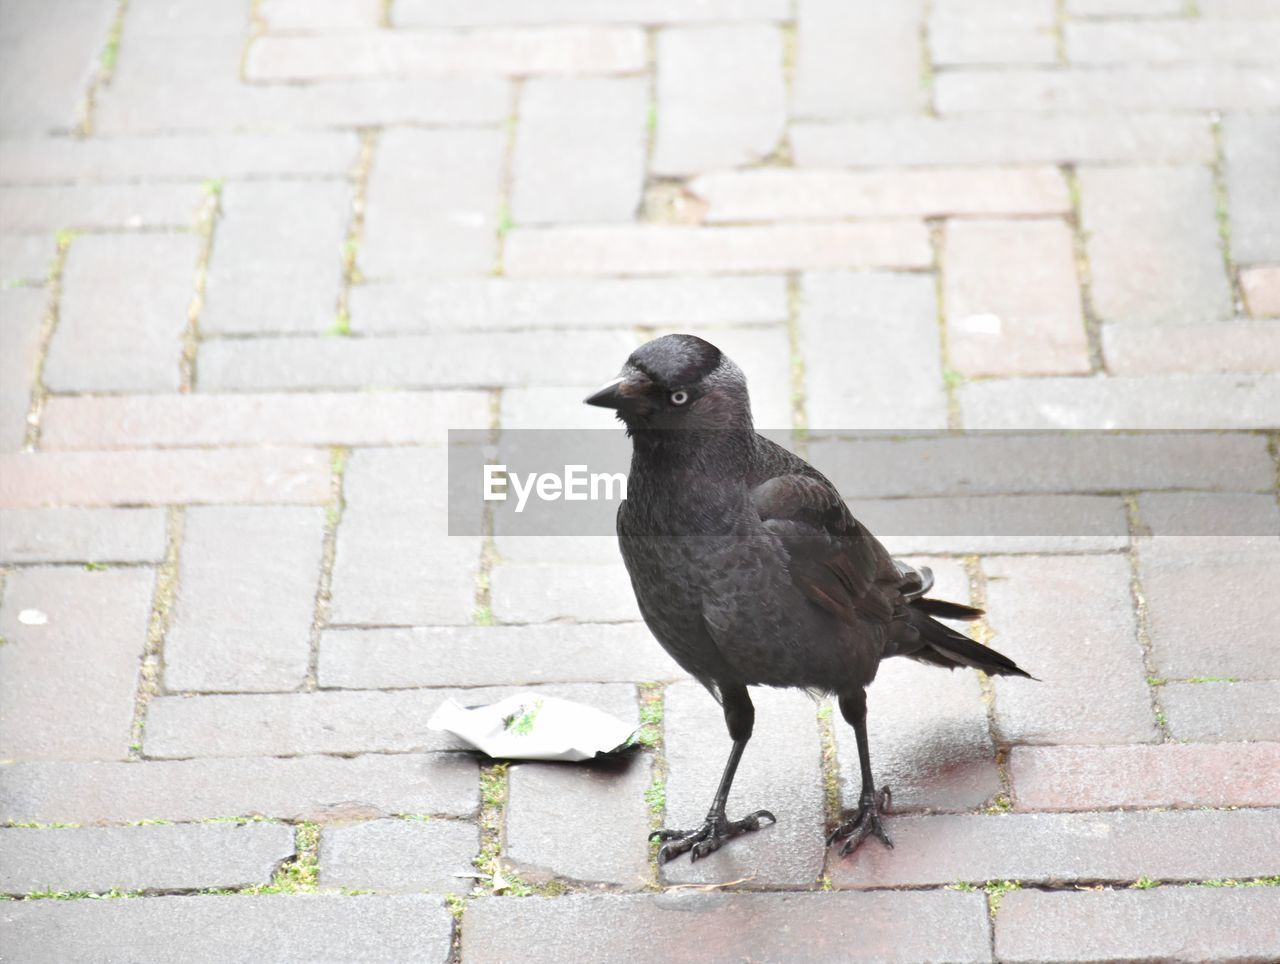 animal, bird, vertebrate, animal themes, animal wildlife, day, animals in the wild, black color, one animal, footpath, no people, cobblestone, outdoors, street, full length, wall, architecture, stone, perching, paving stone